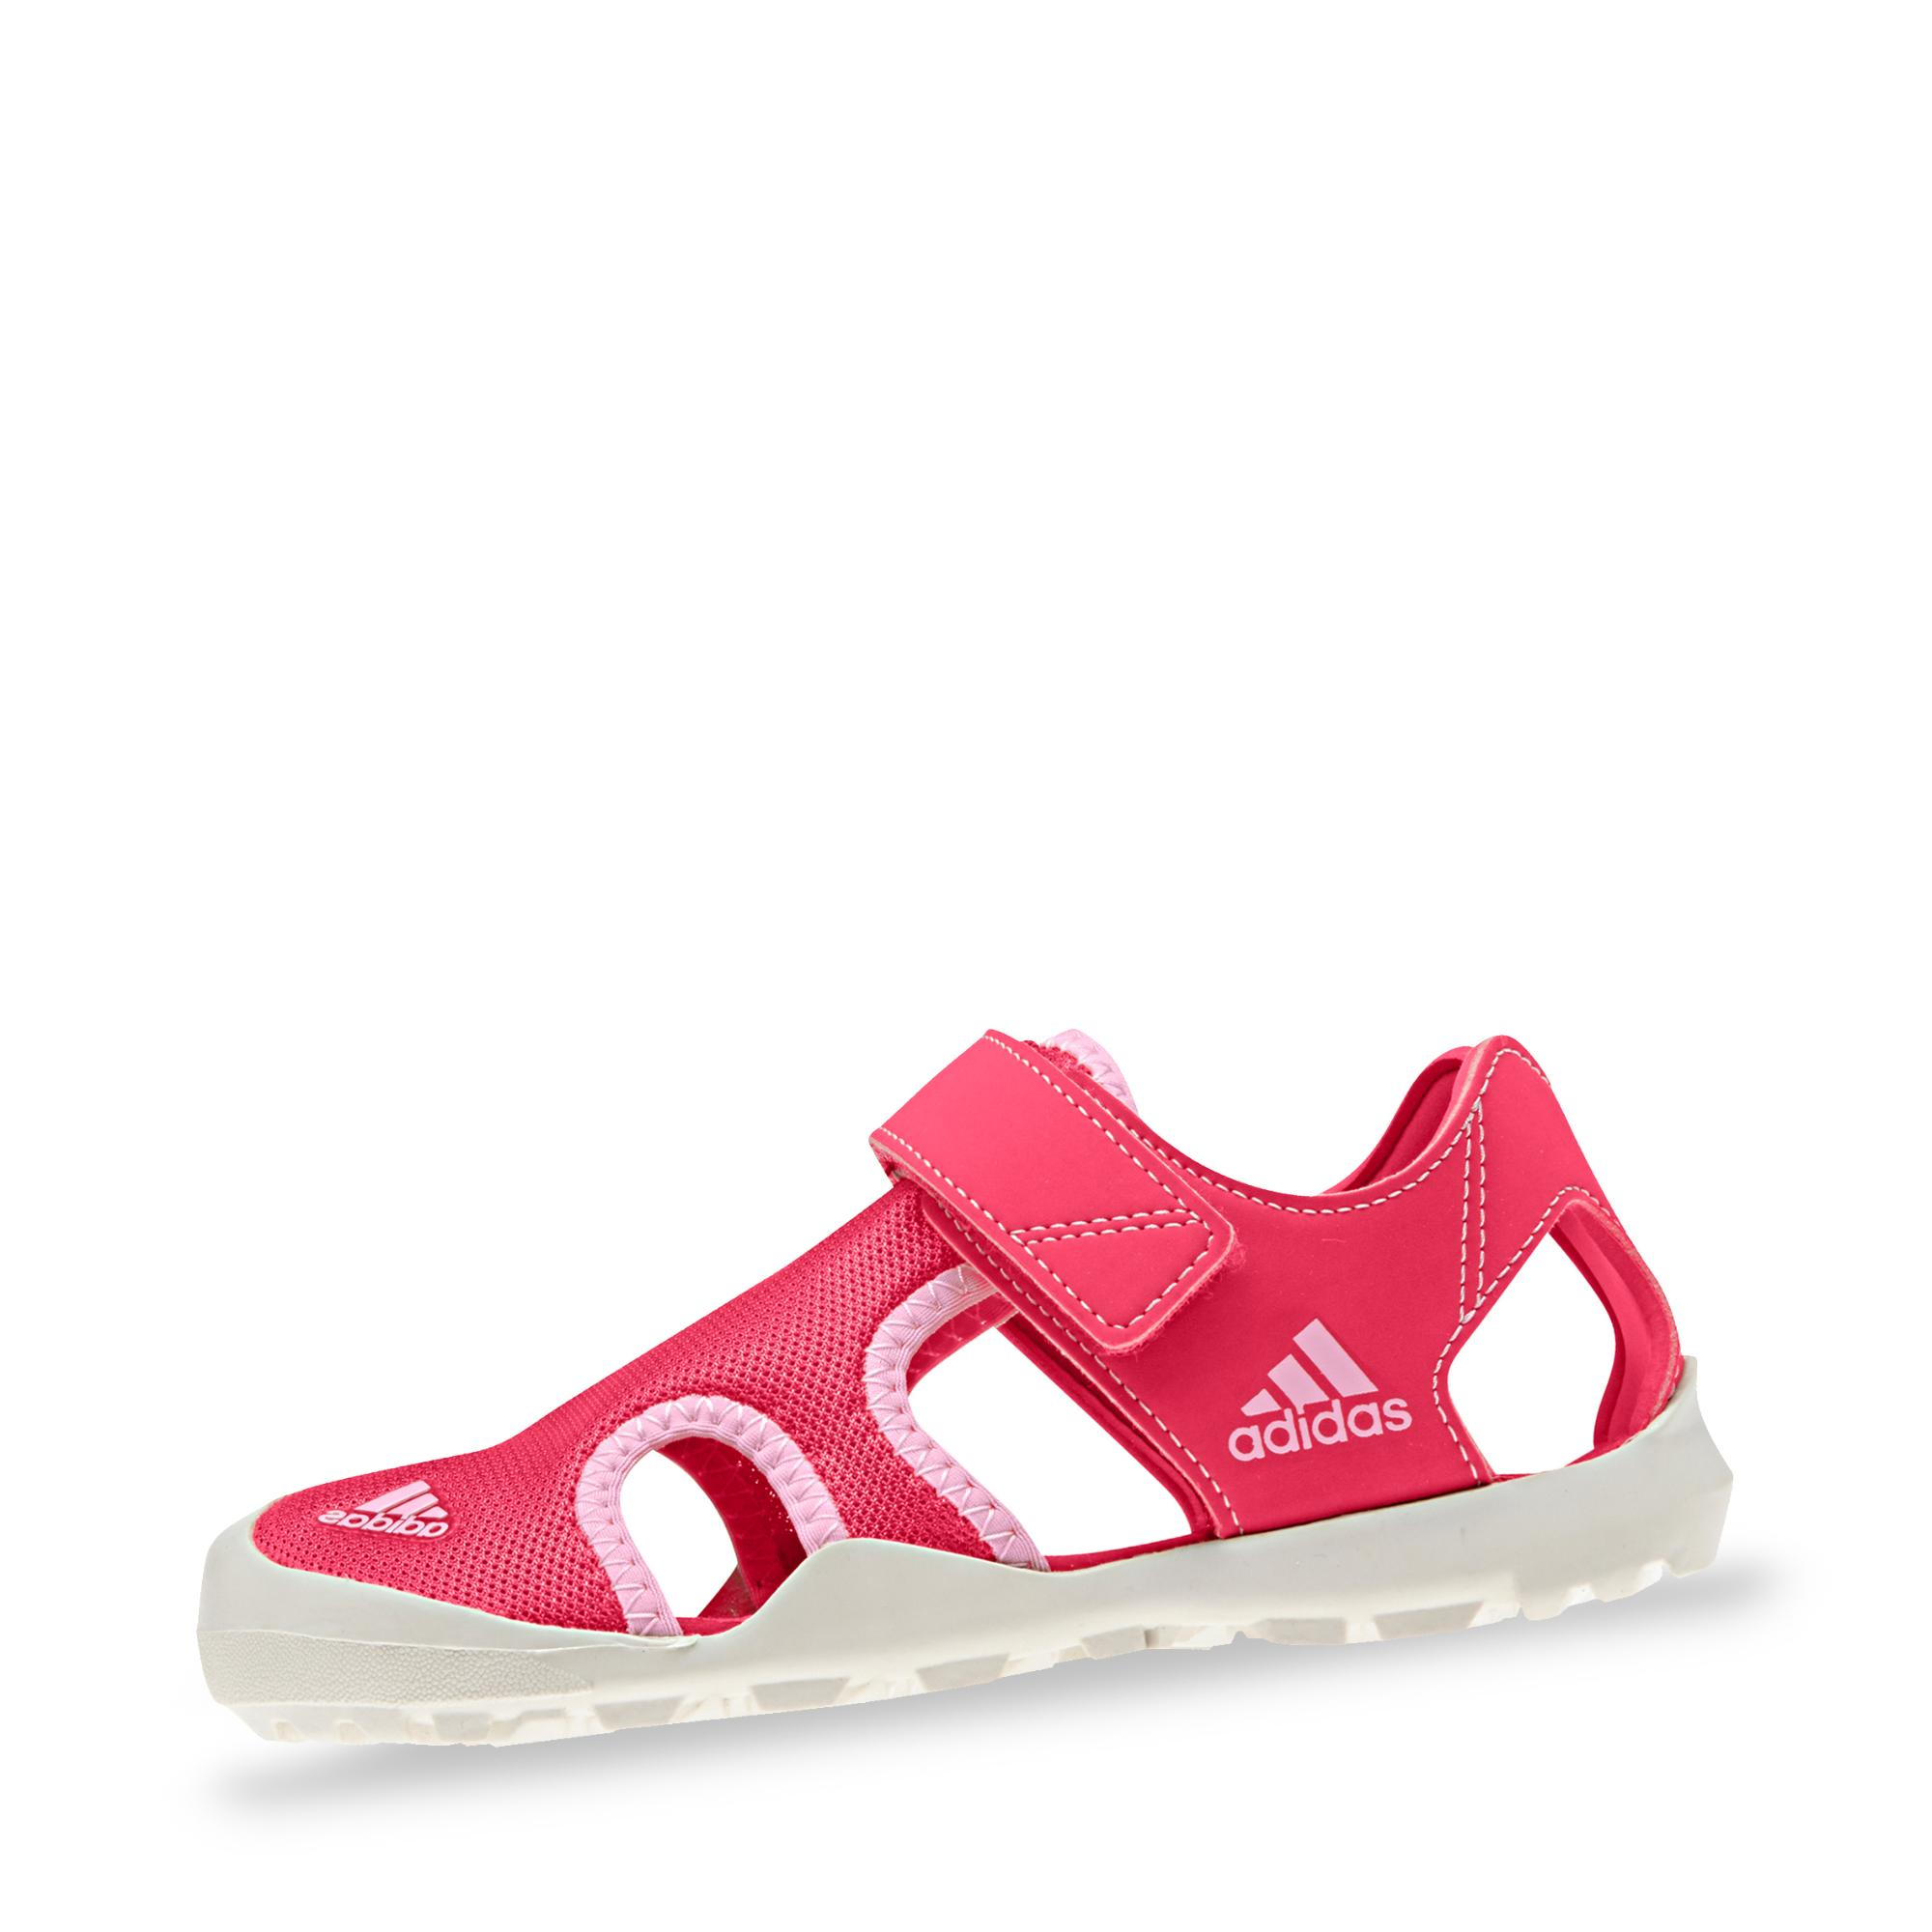 low priced 3a767 eede1 adidas Captain Toey Sandale